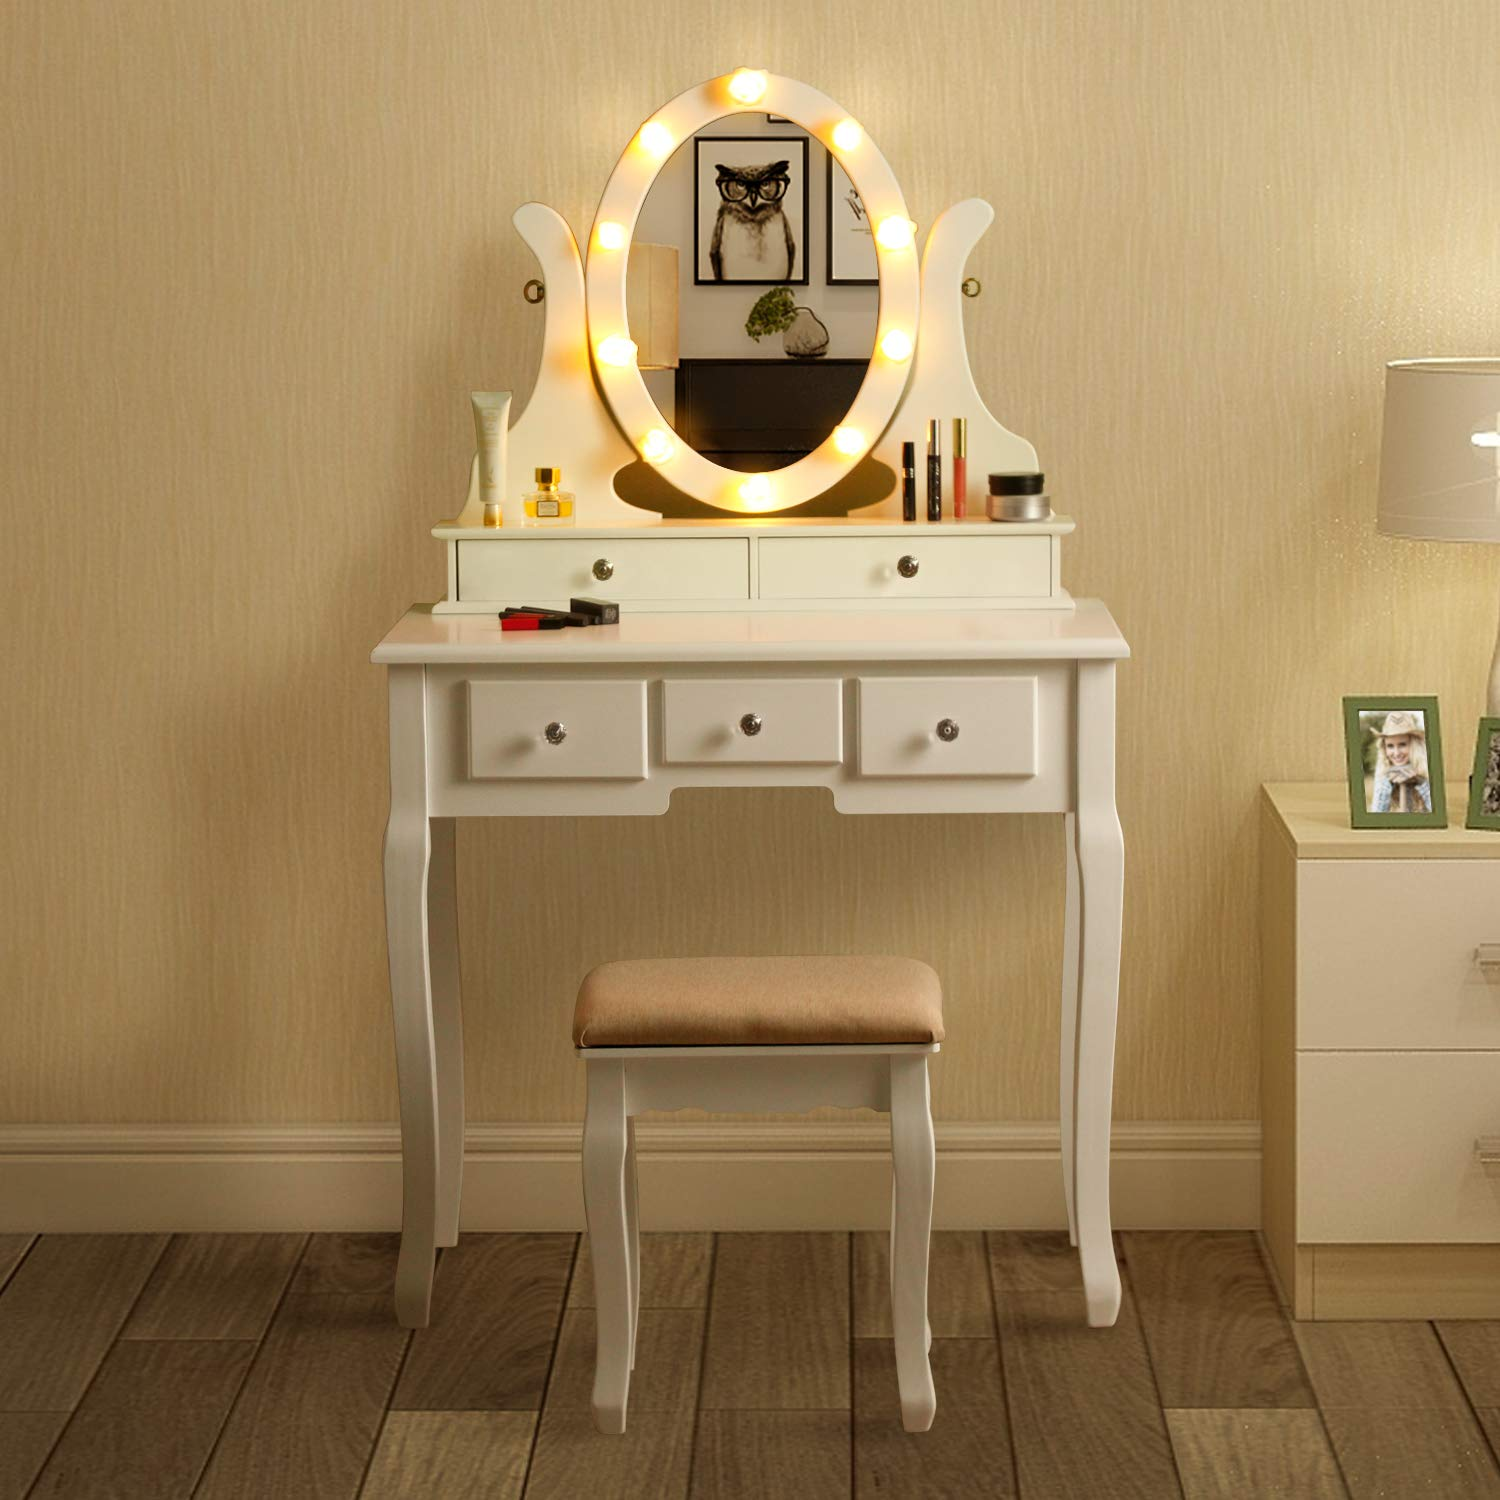 Vanity Table 10 LED Rose Lights, 5 Drawers Makeup Dressing Desk with Cushioned Stool Set, White by MAISMODA